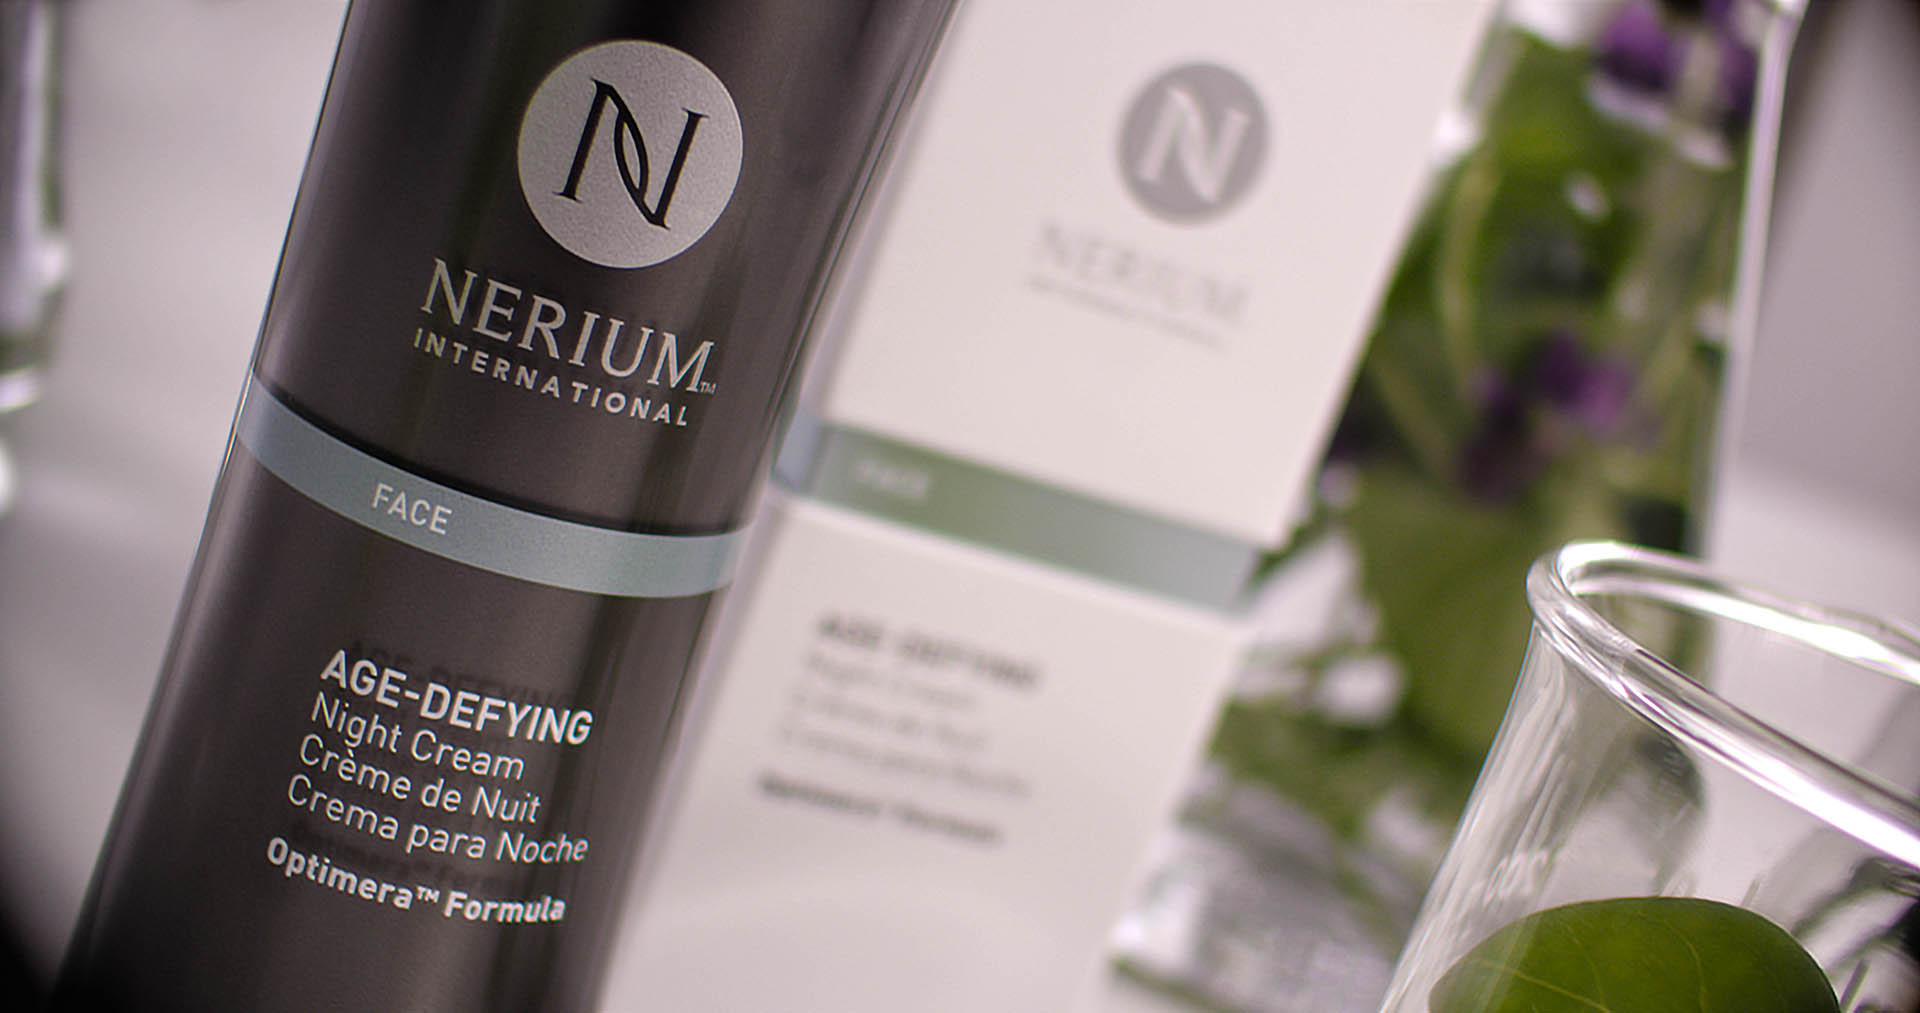 NeriumAD table top product shot